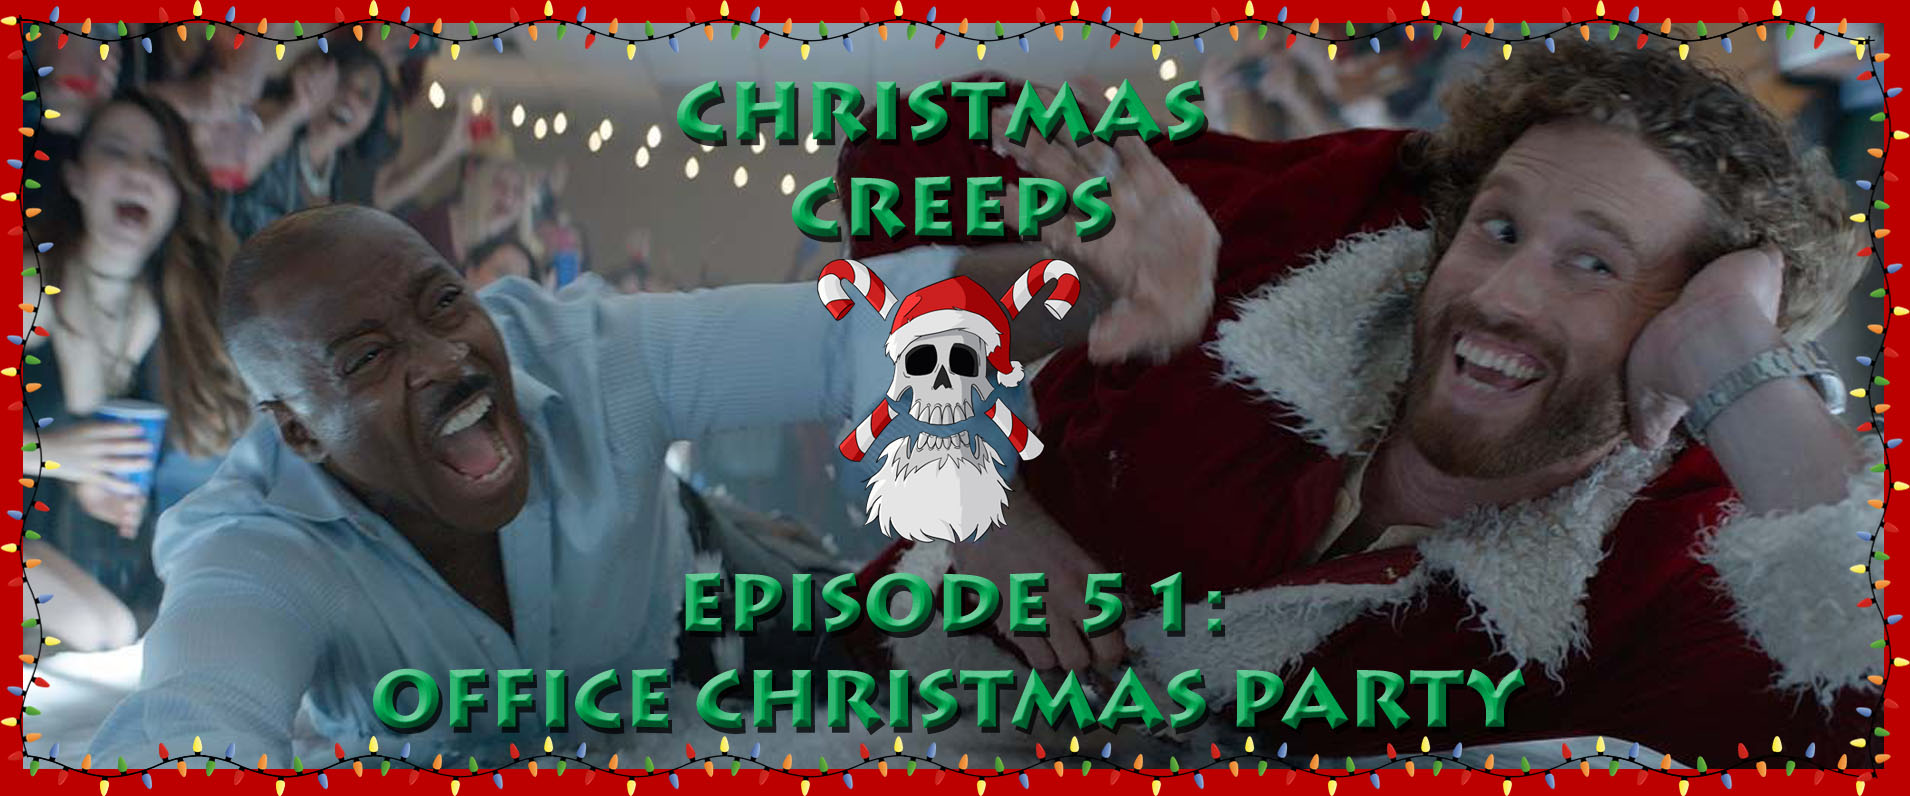 Episode 51: Office Christmas Party | Christmas Creeps